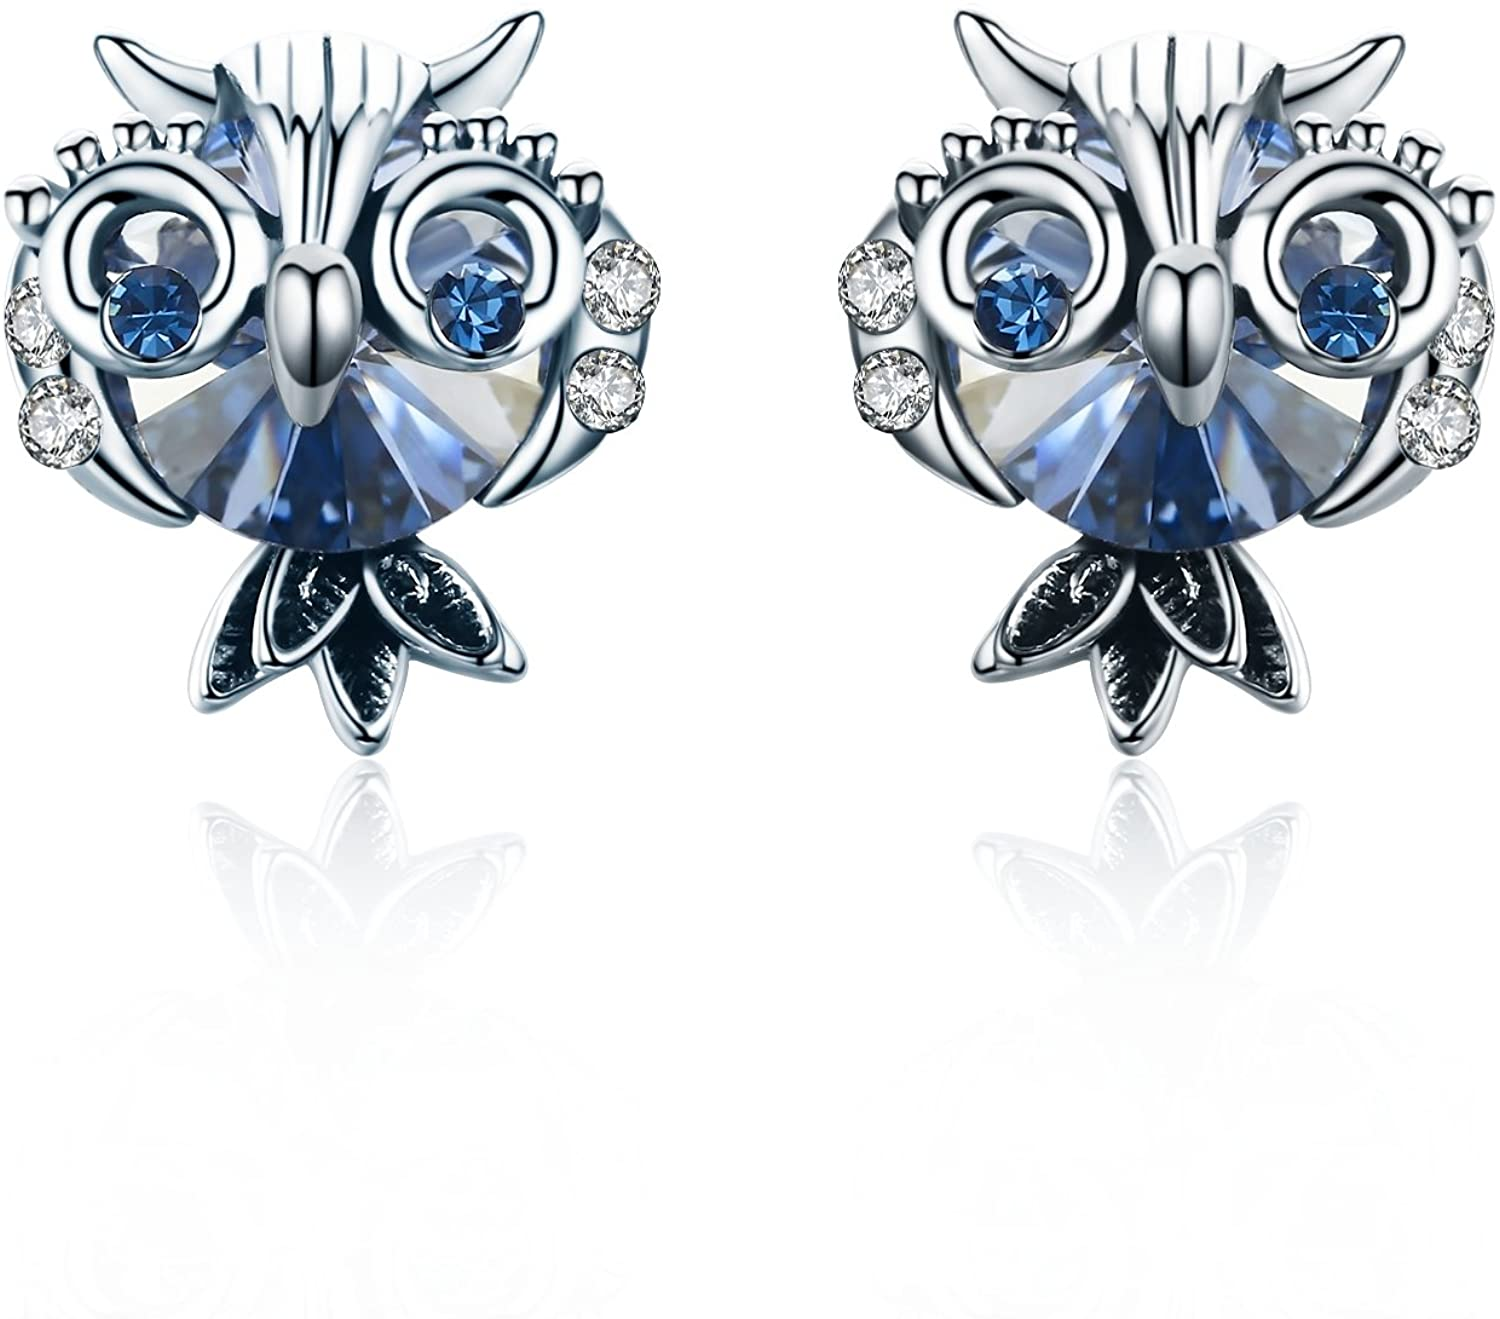 SBLING Blue Owl Stud Earrings Made with Swarovski Crystals (2.5 cttw)